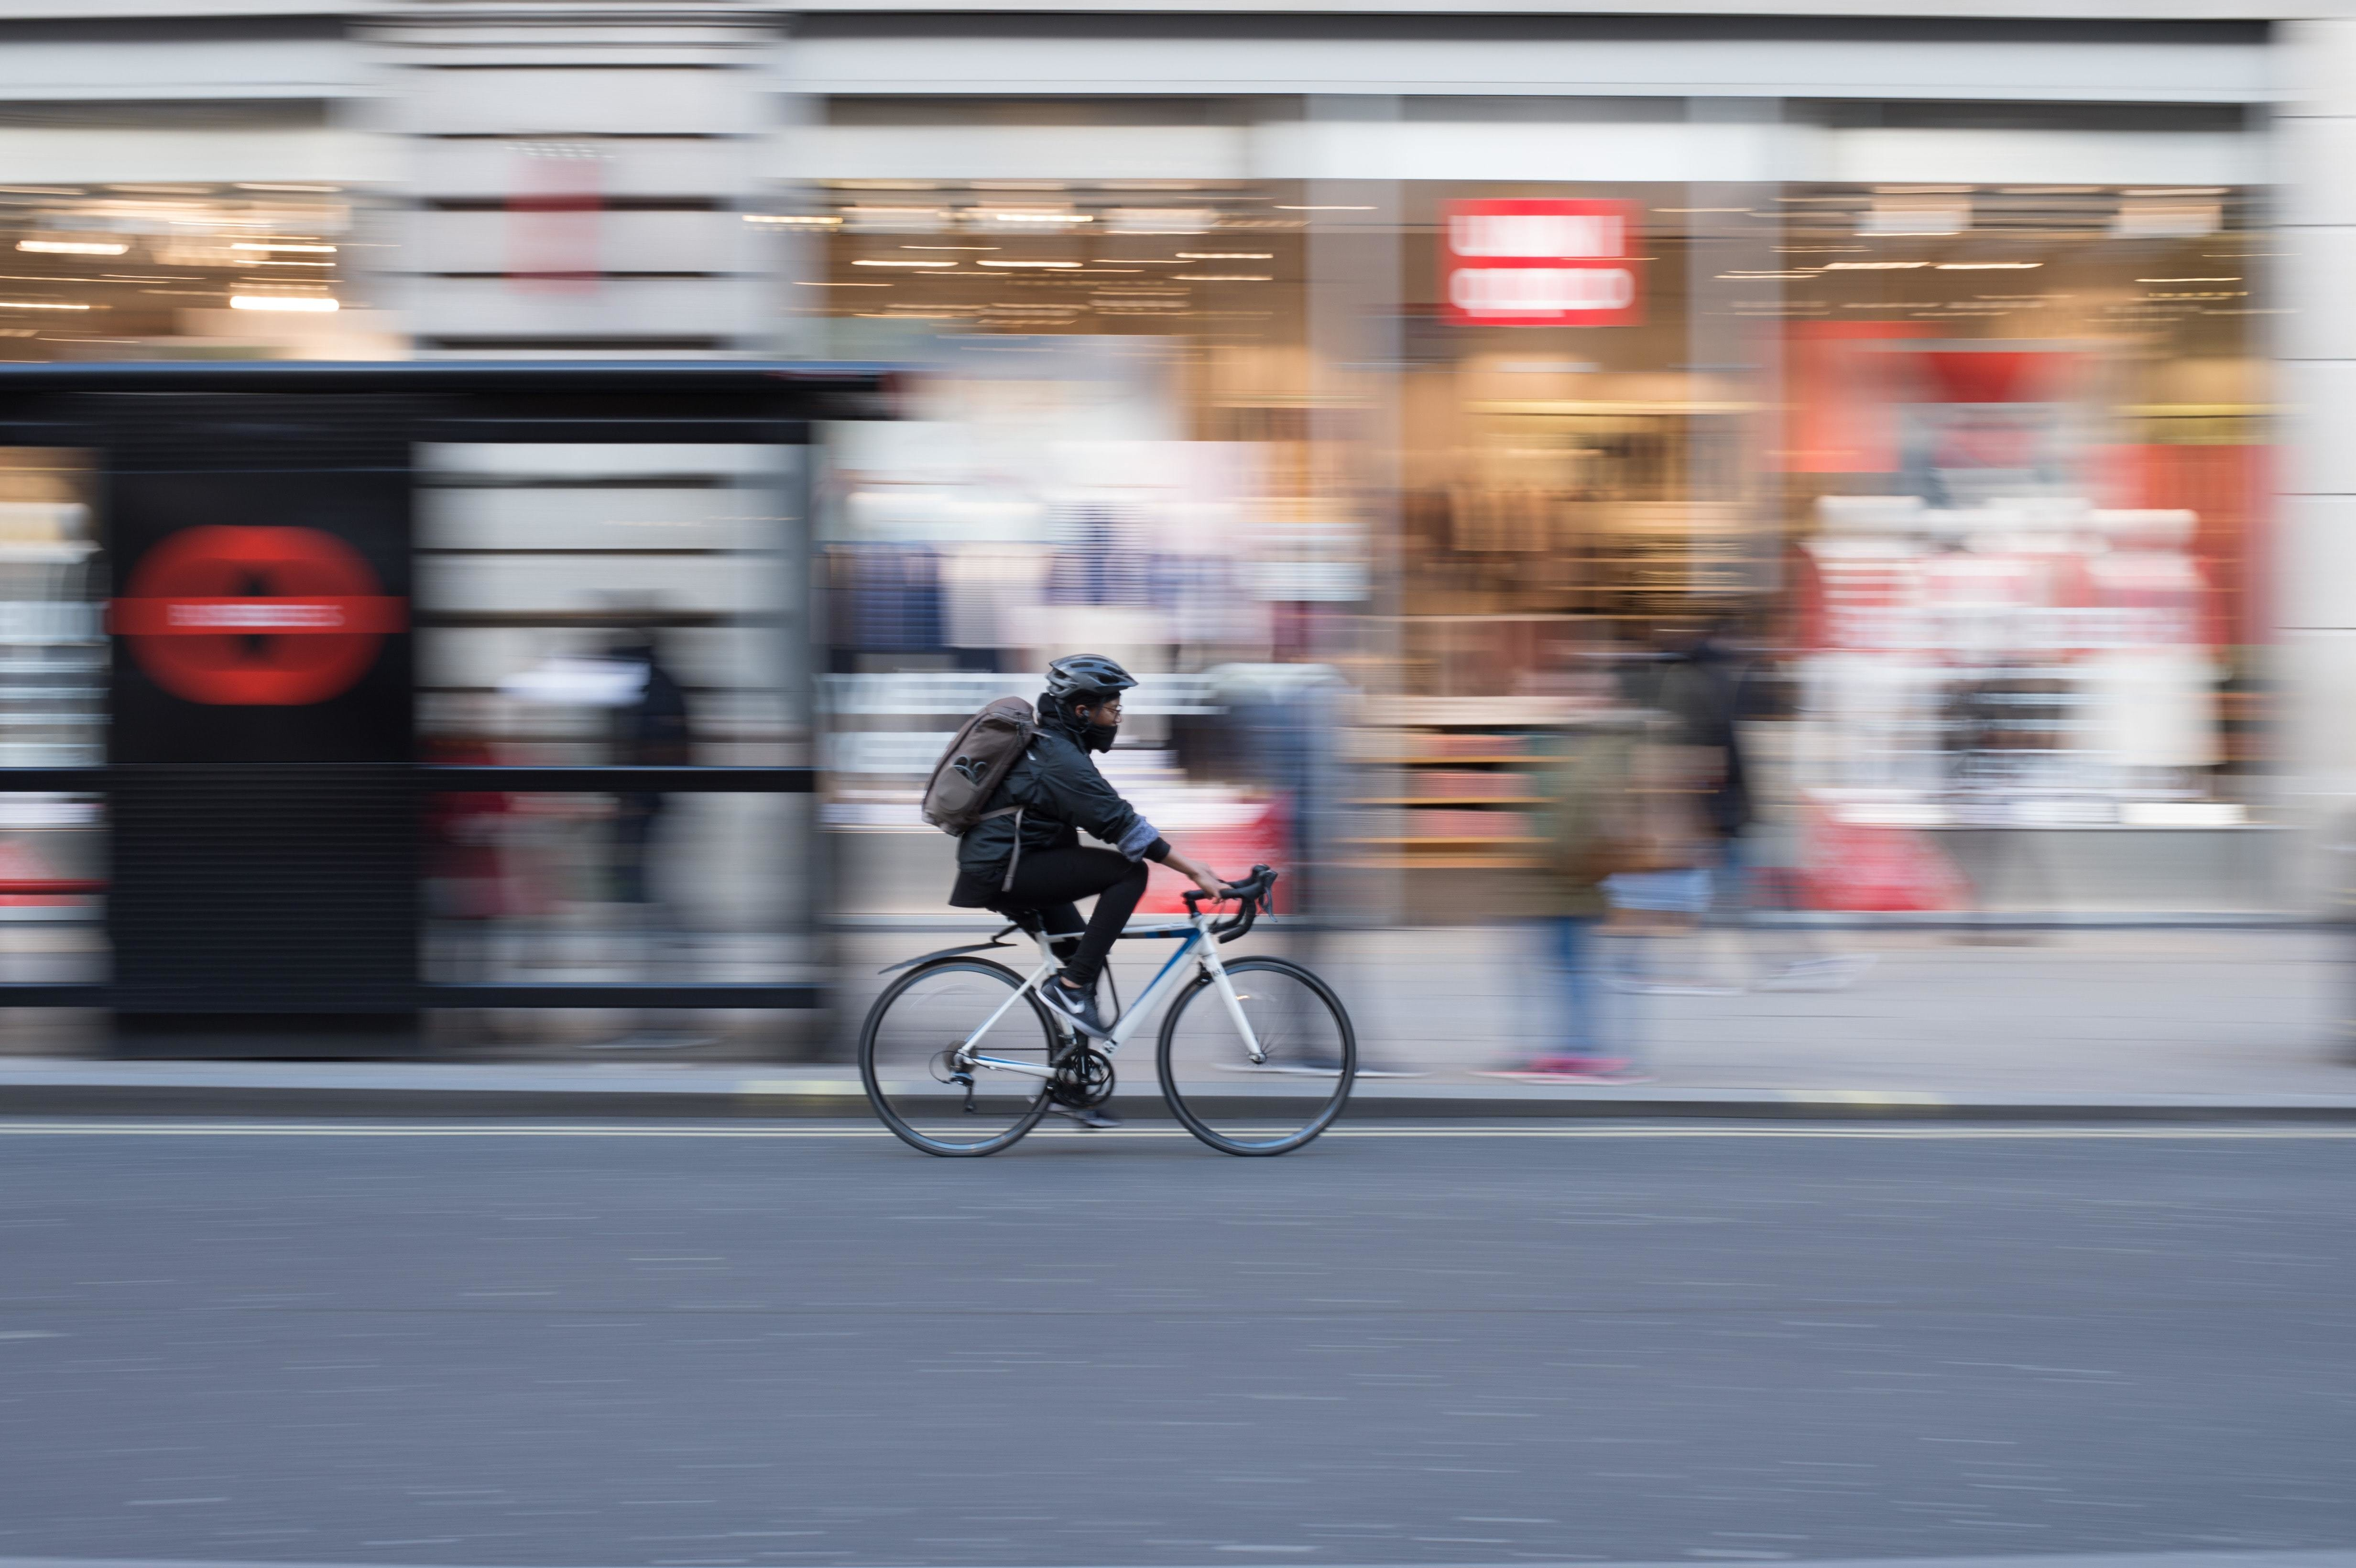 image of a person riding a bike and wearing a mask